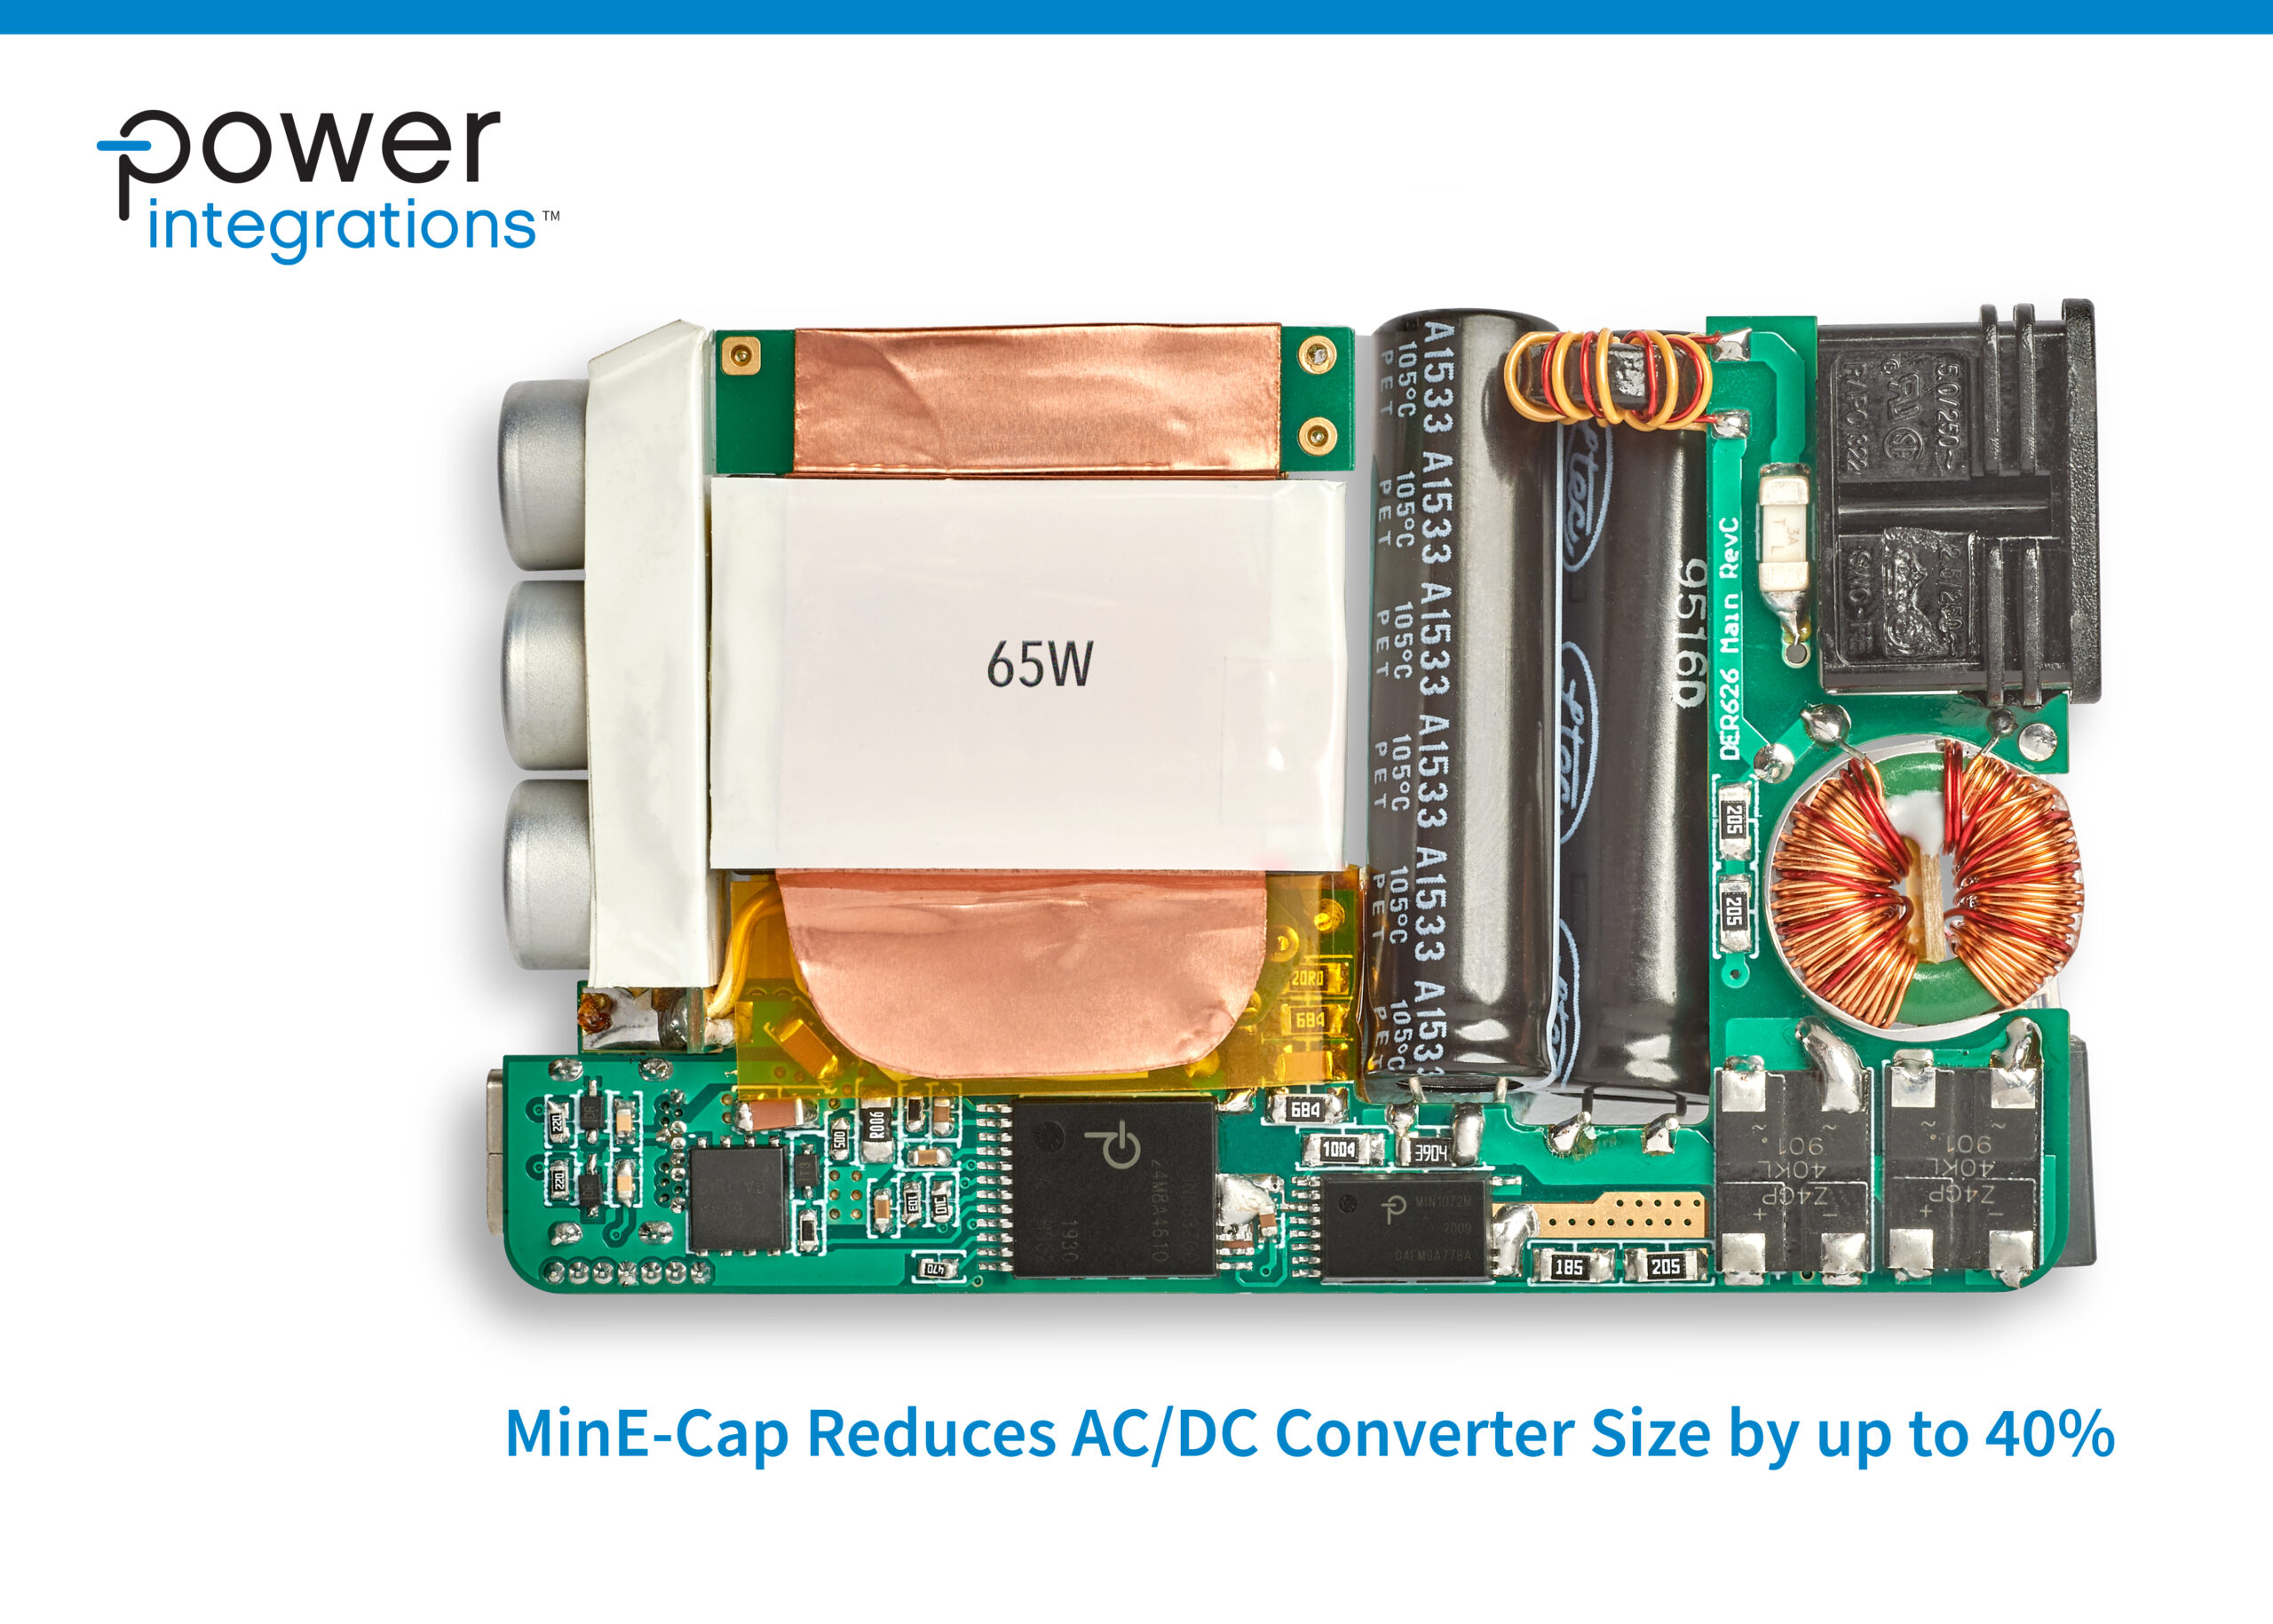 Power Integrations' New MinE-CAP IC Reduces Volume of AC-DC Converters by Up to 40%